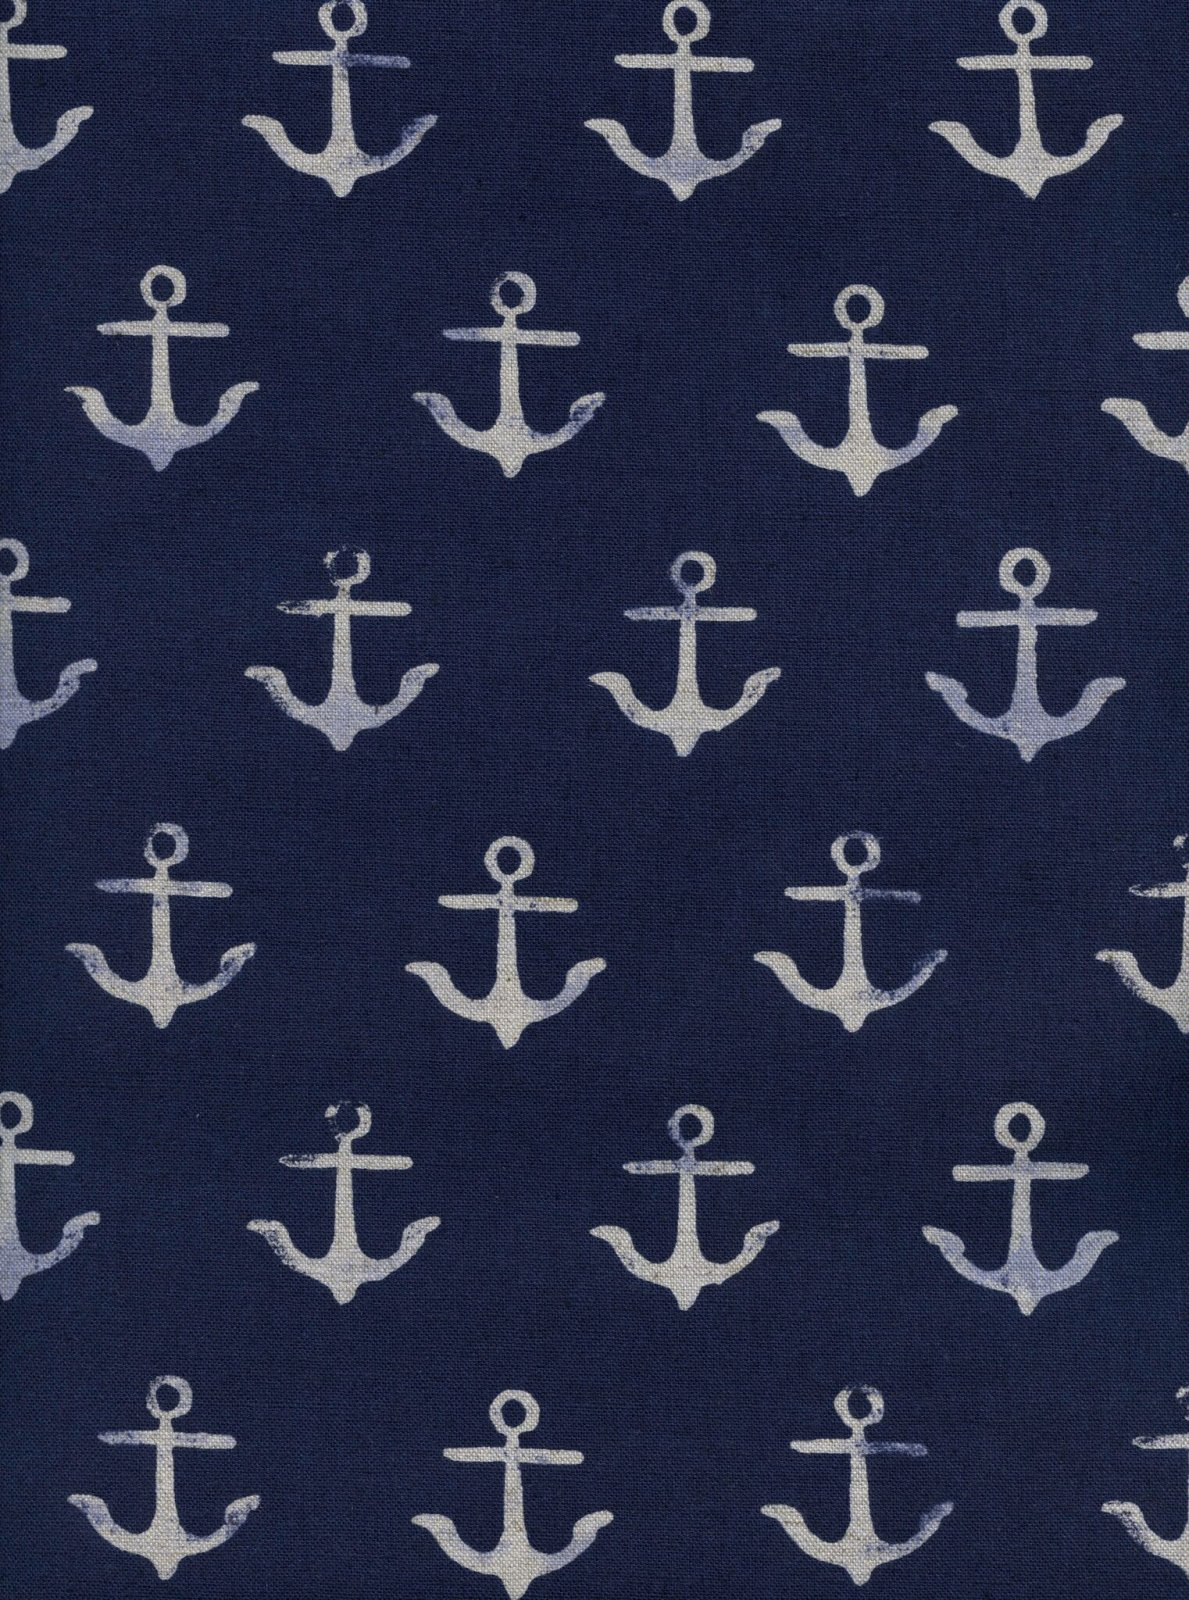 S.S. Bluebird Melody Anchor Navy CANVAS 5104 12